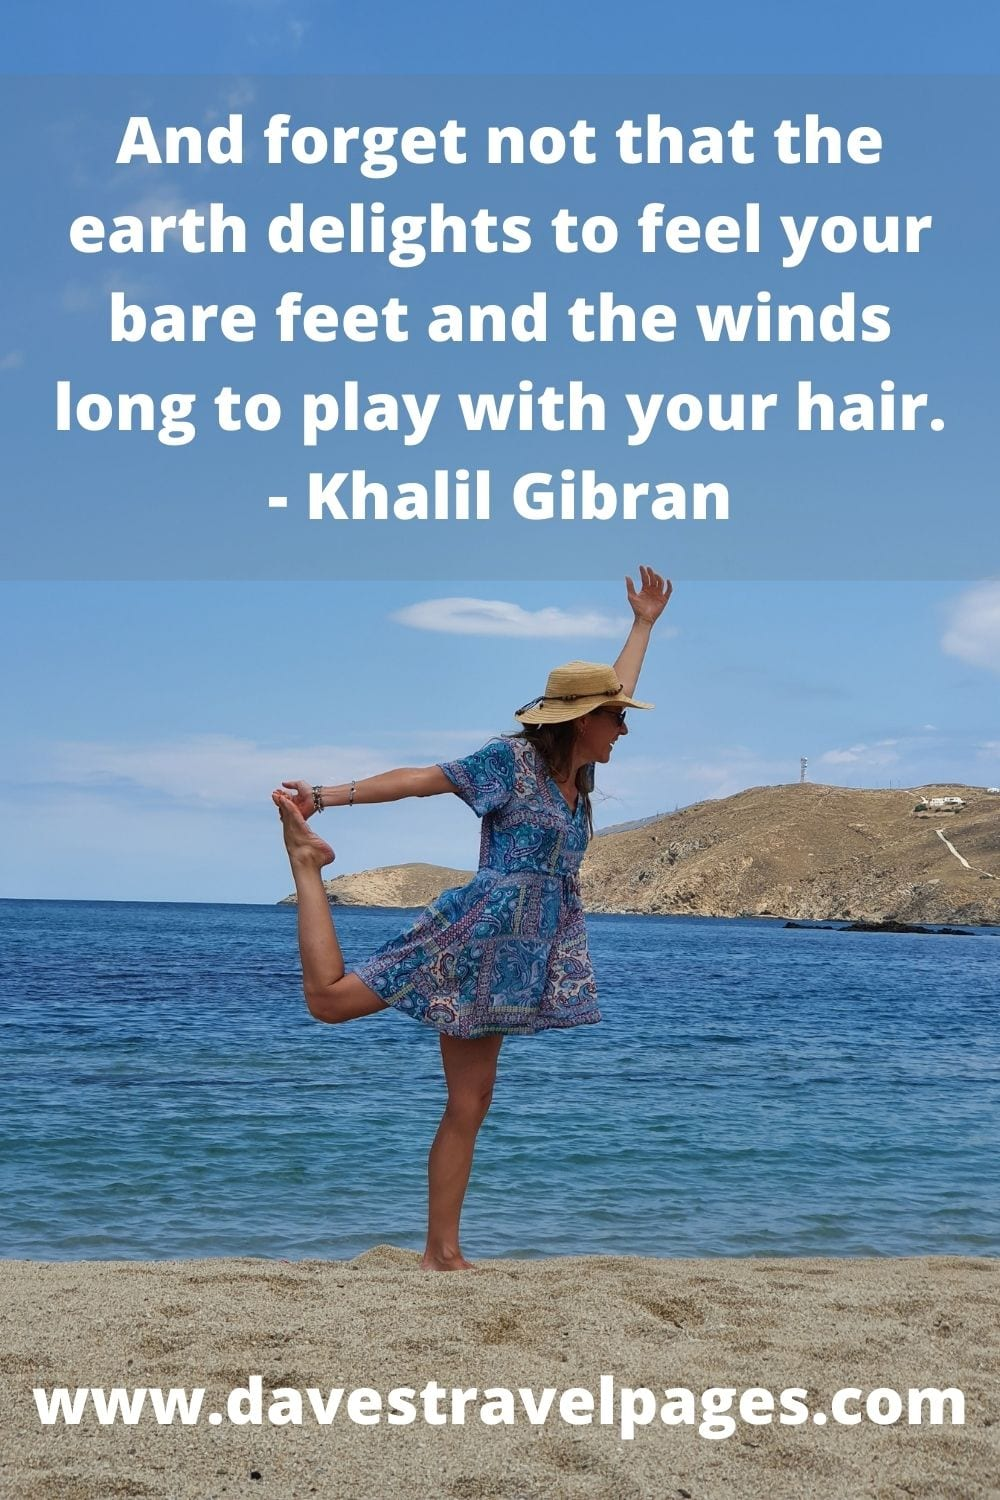 And forget not that the earth delights to feel your bare feet and the winds long to play with your hair. - Khalil Gibran beauty of nature quotes